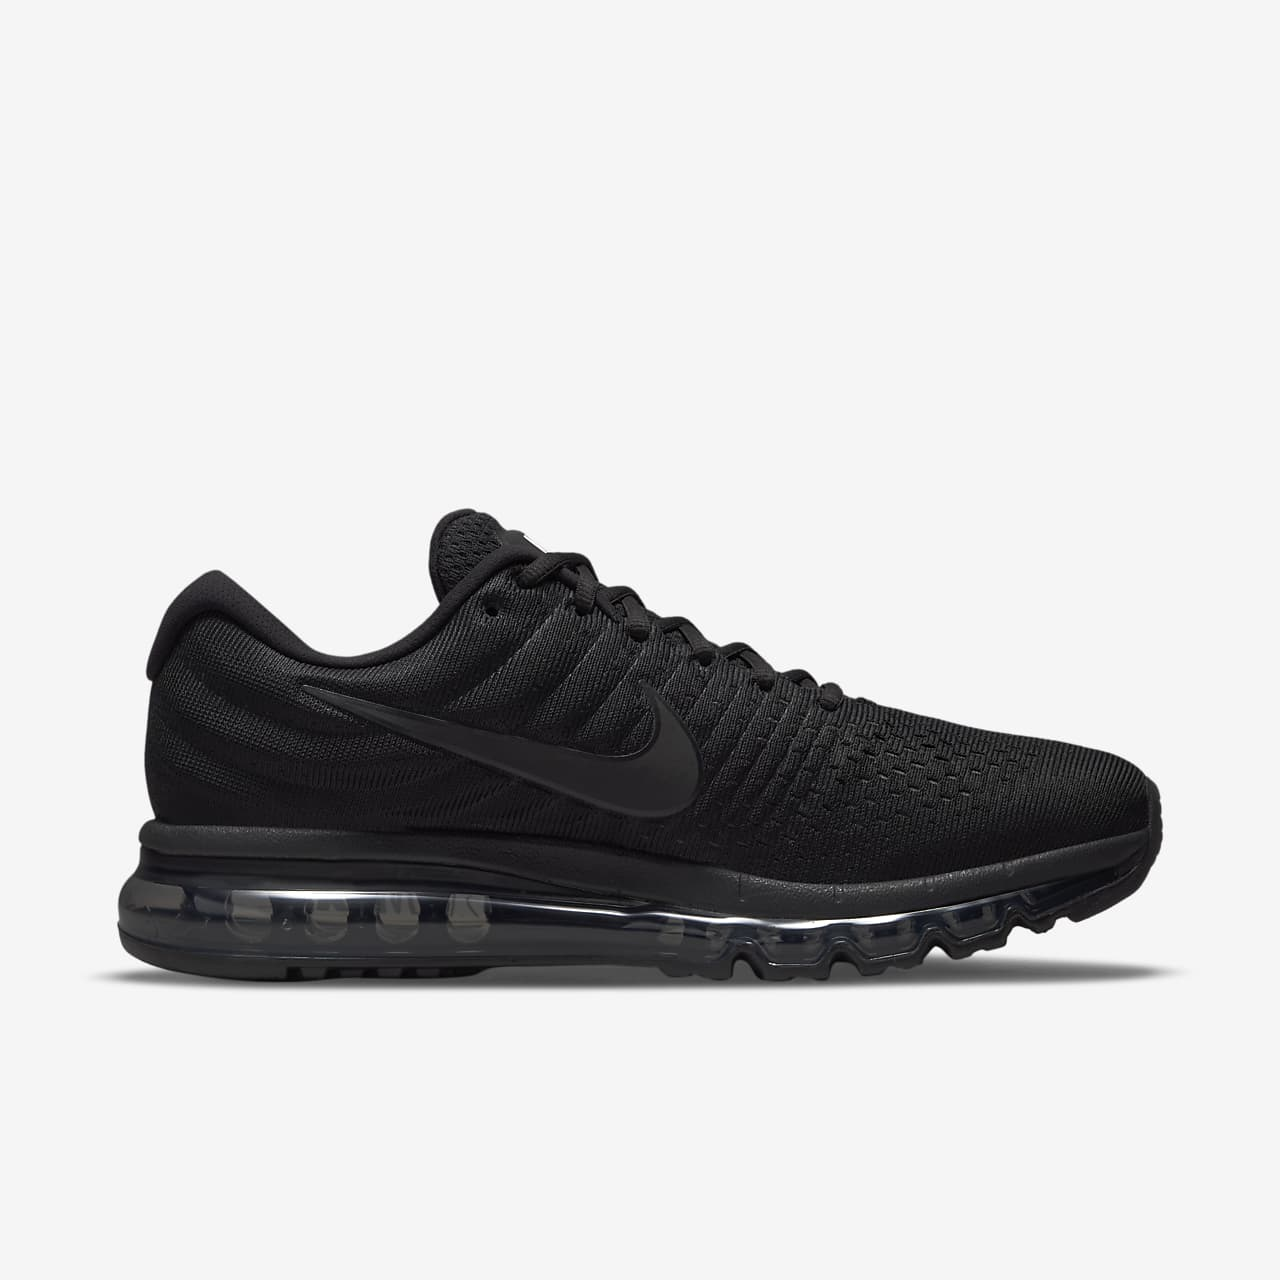 nike air max 2017 men 39 s running shoe gb. Black Bedroom Furniture Sets. Home Design Ideas